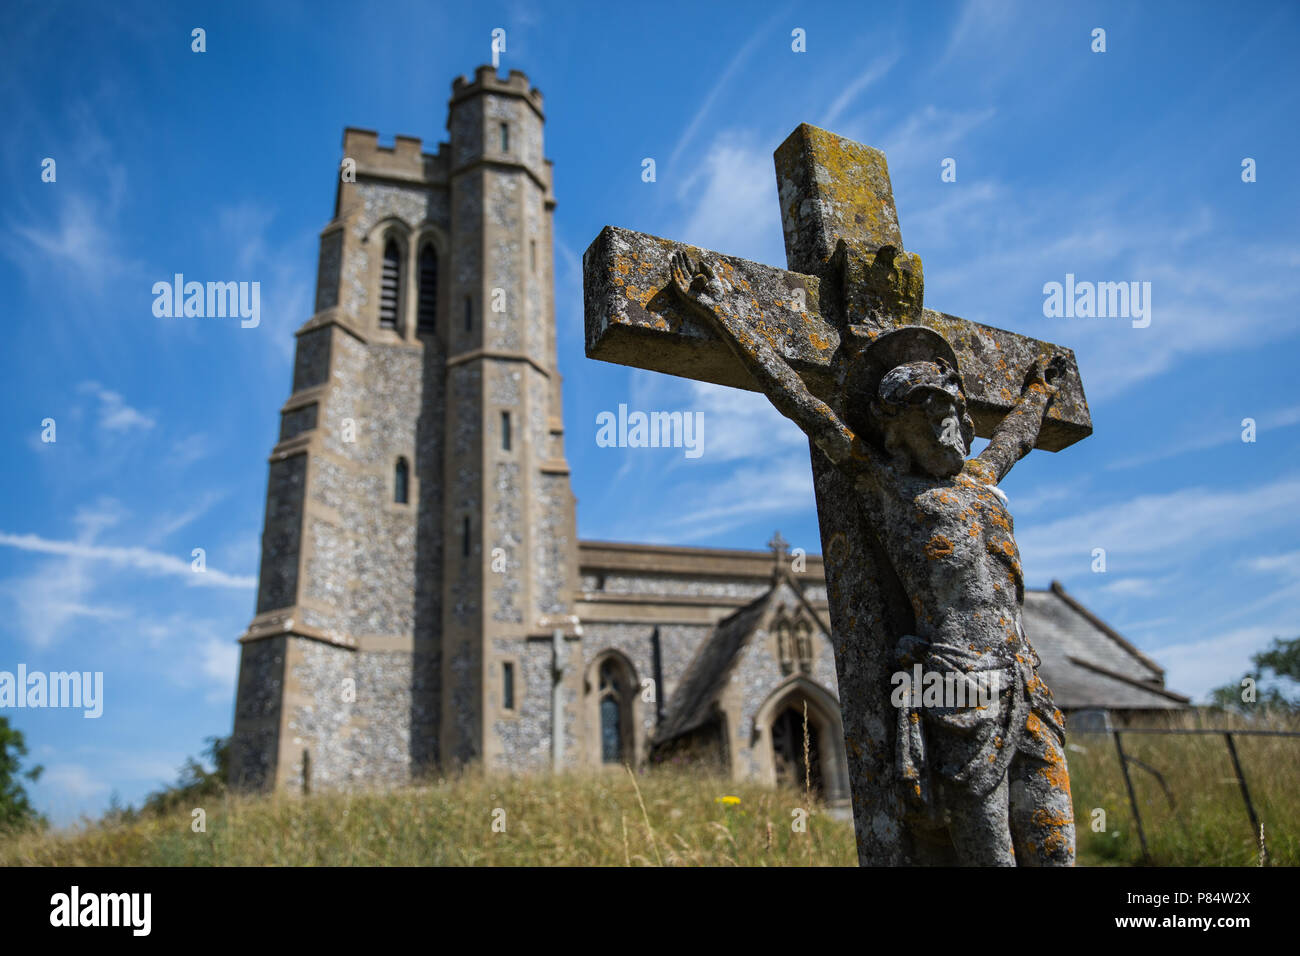 Ellesborough, UK. 6th July, 2018. The parish church of Saints Peter and Paul. - Stock Image